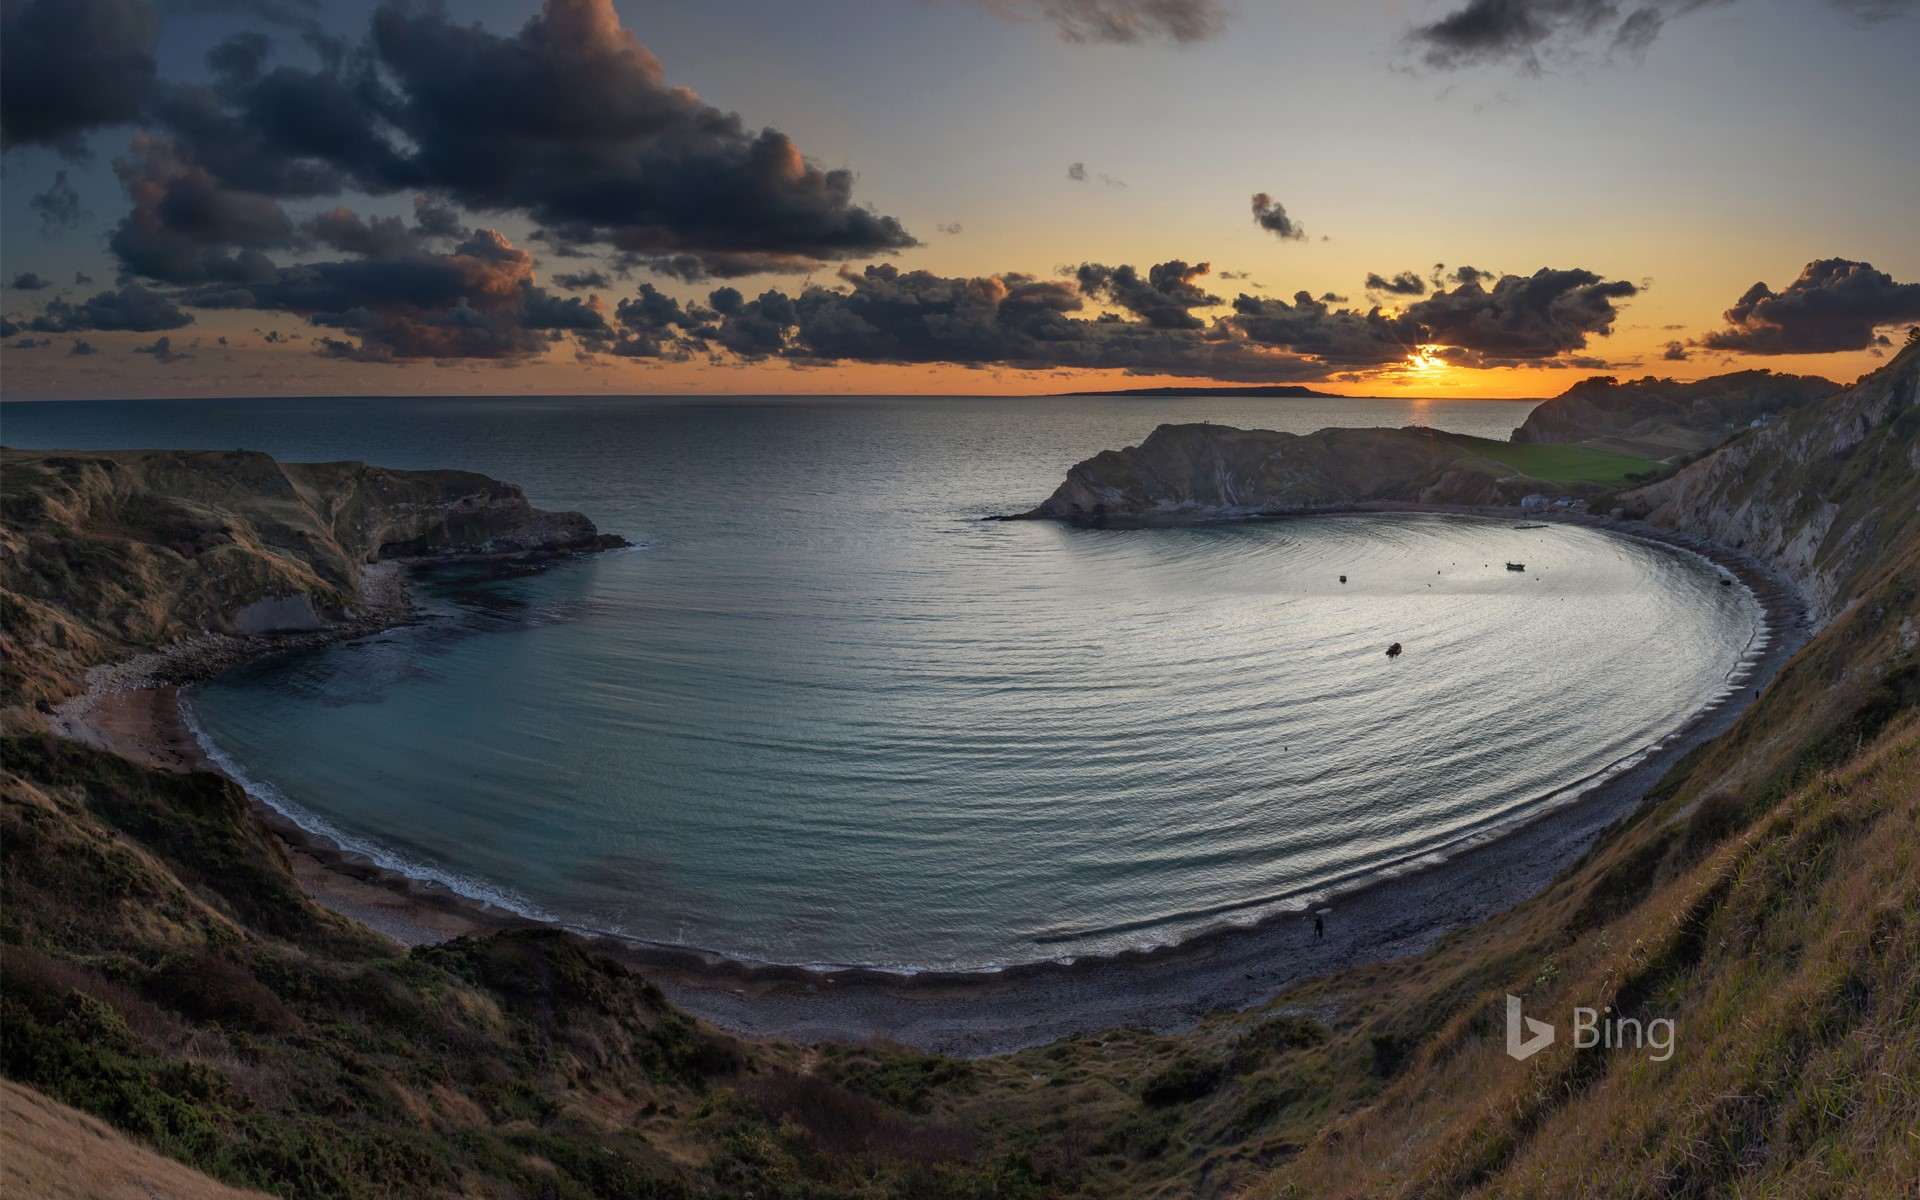 Panoramic view of Lulworth Cove at sunset in Dorset, England